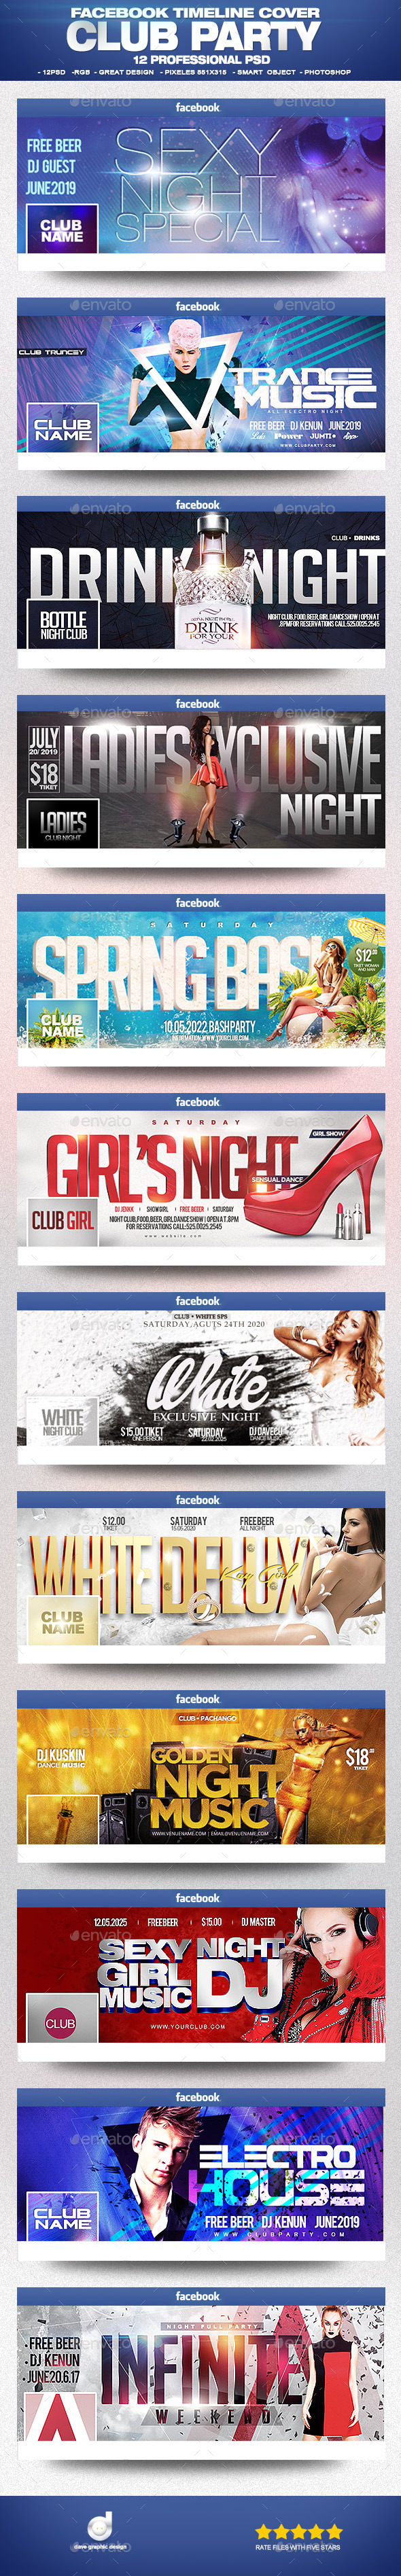 Facebook Timeline Cover Package Club Party Vol.1 - Facebook Timeline Covers Social Media